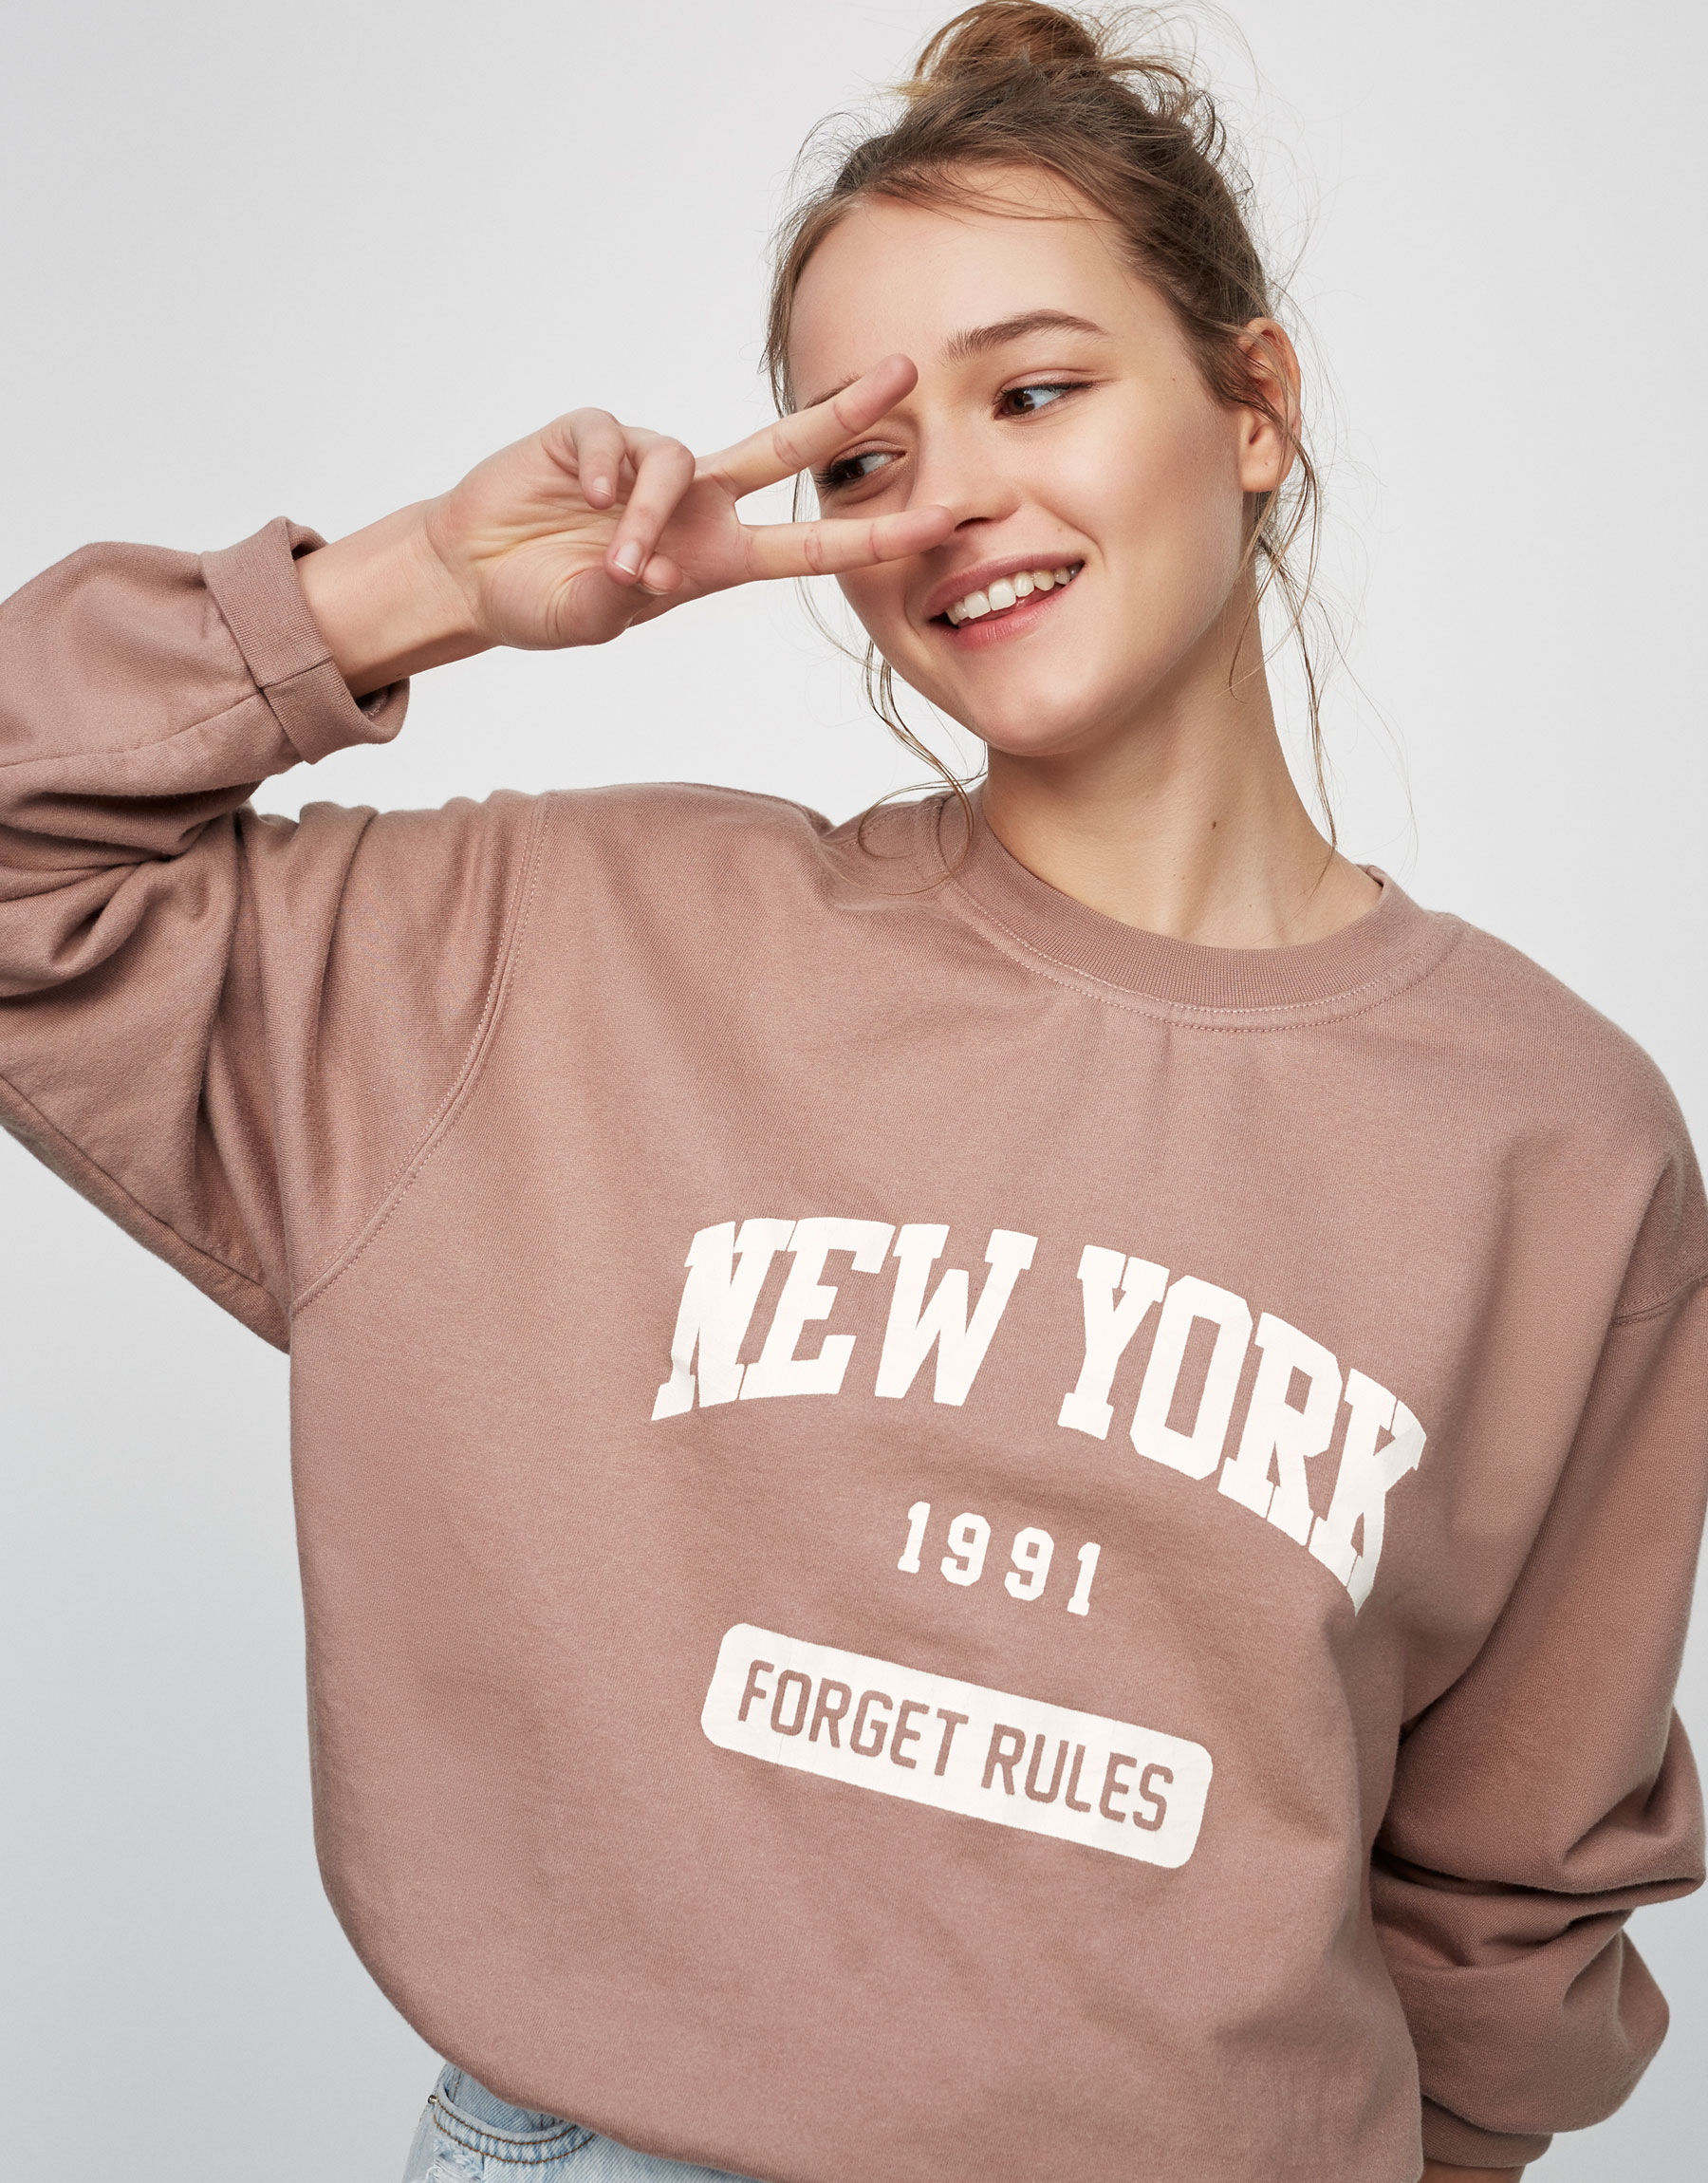 New York slogan sweatshirt